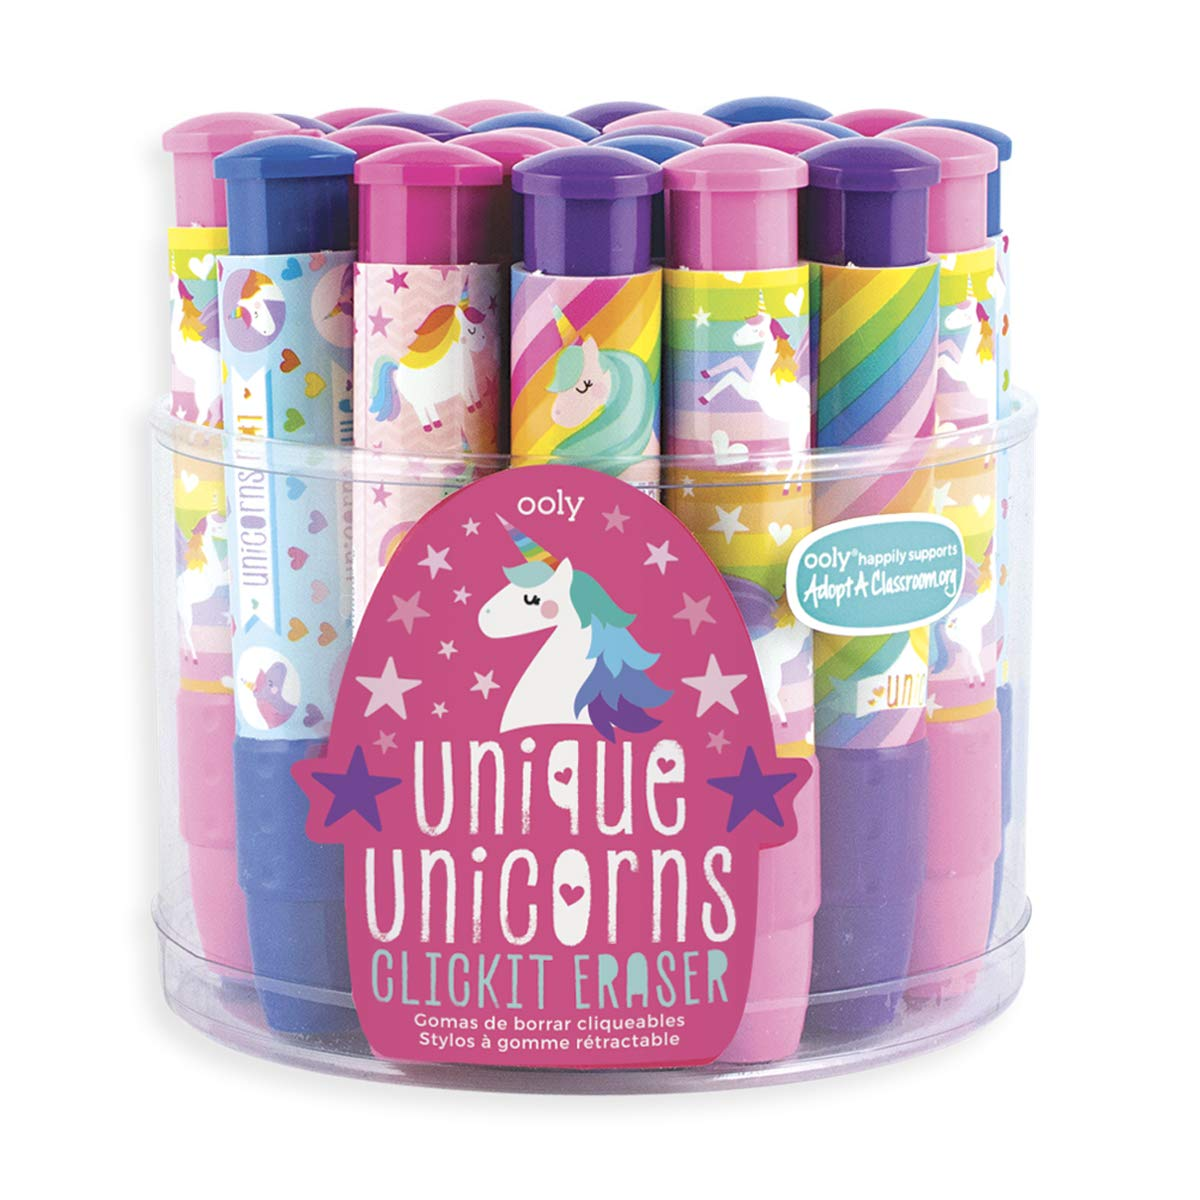 Ooly Click It Eraser - Clickable Pencil Erasers Set - Unique Unicorns